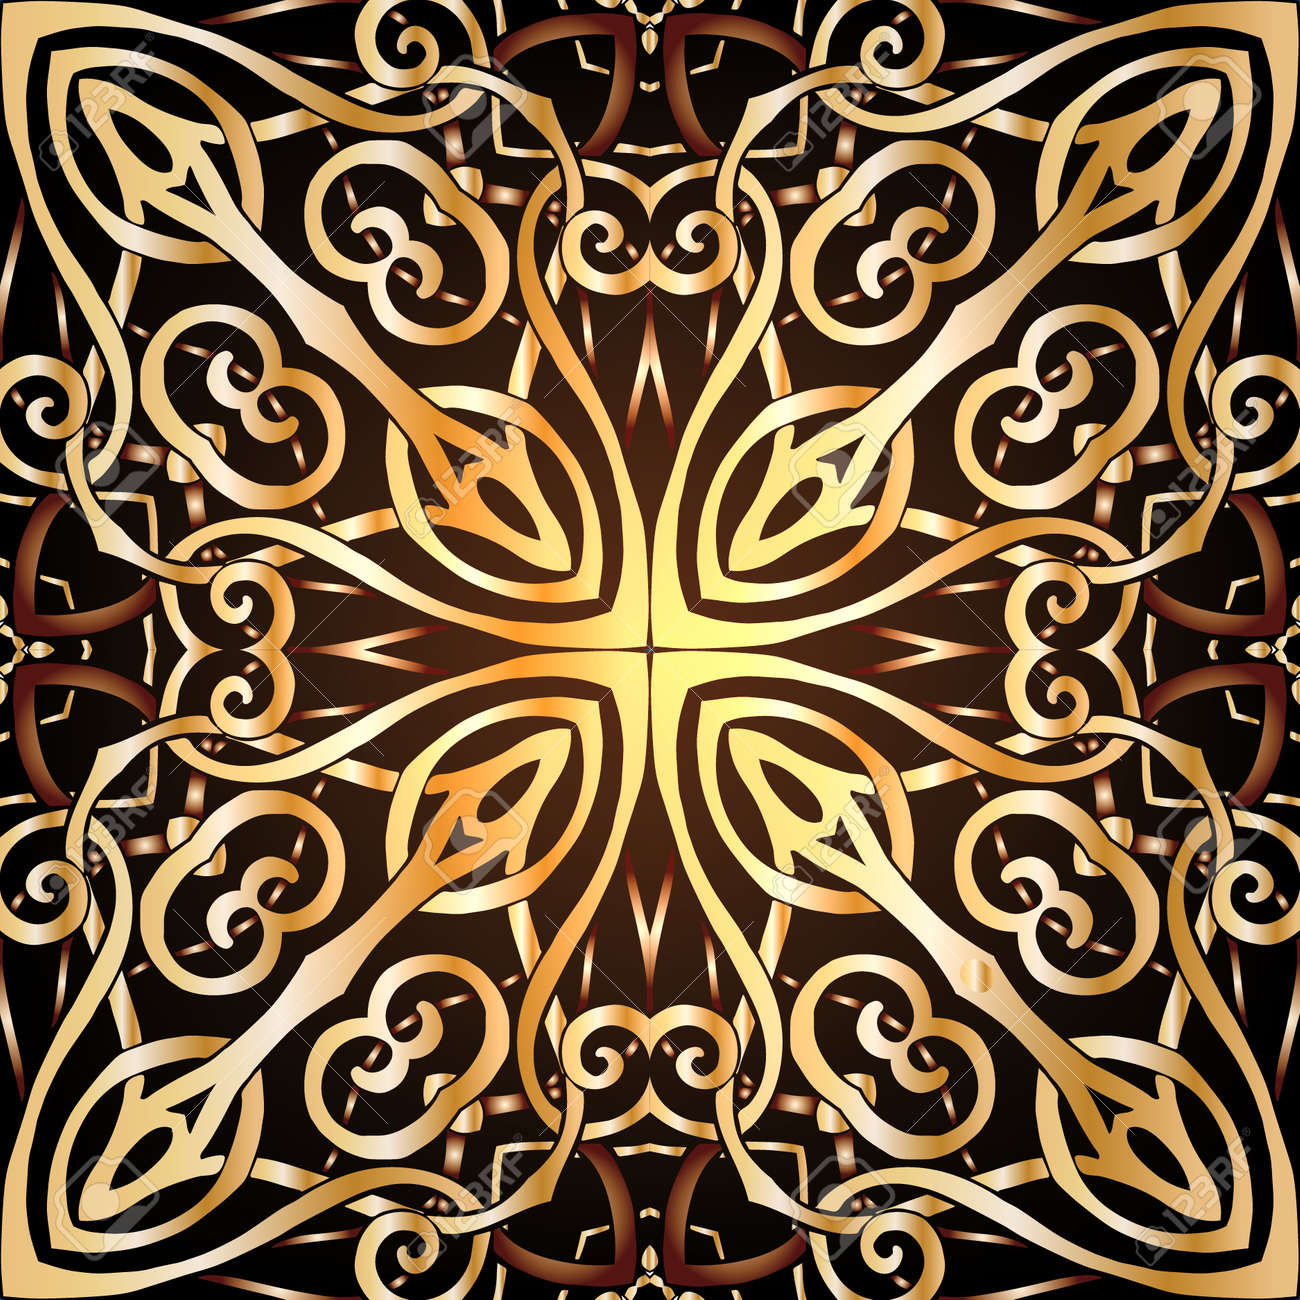 Decorative Seamless Pattern In Gold Color In Art Deco Style Royalty Free Cliparts Vectors And Stock Illustration Image 58125702